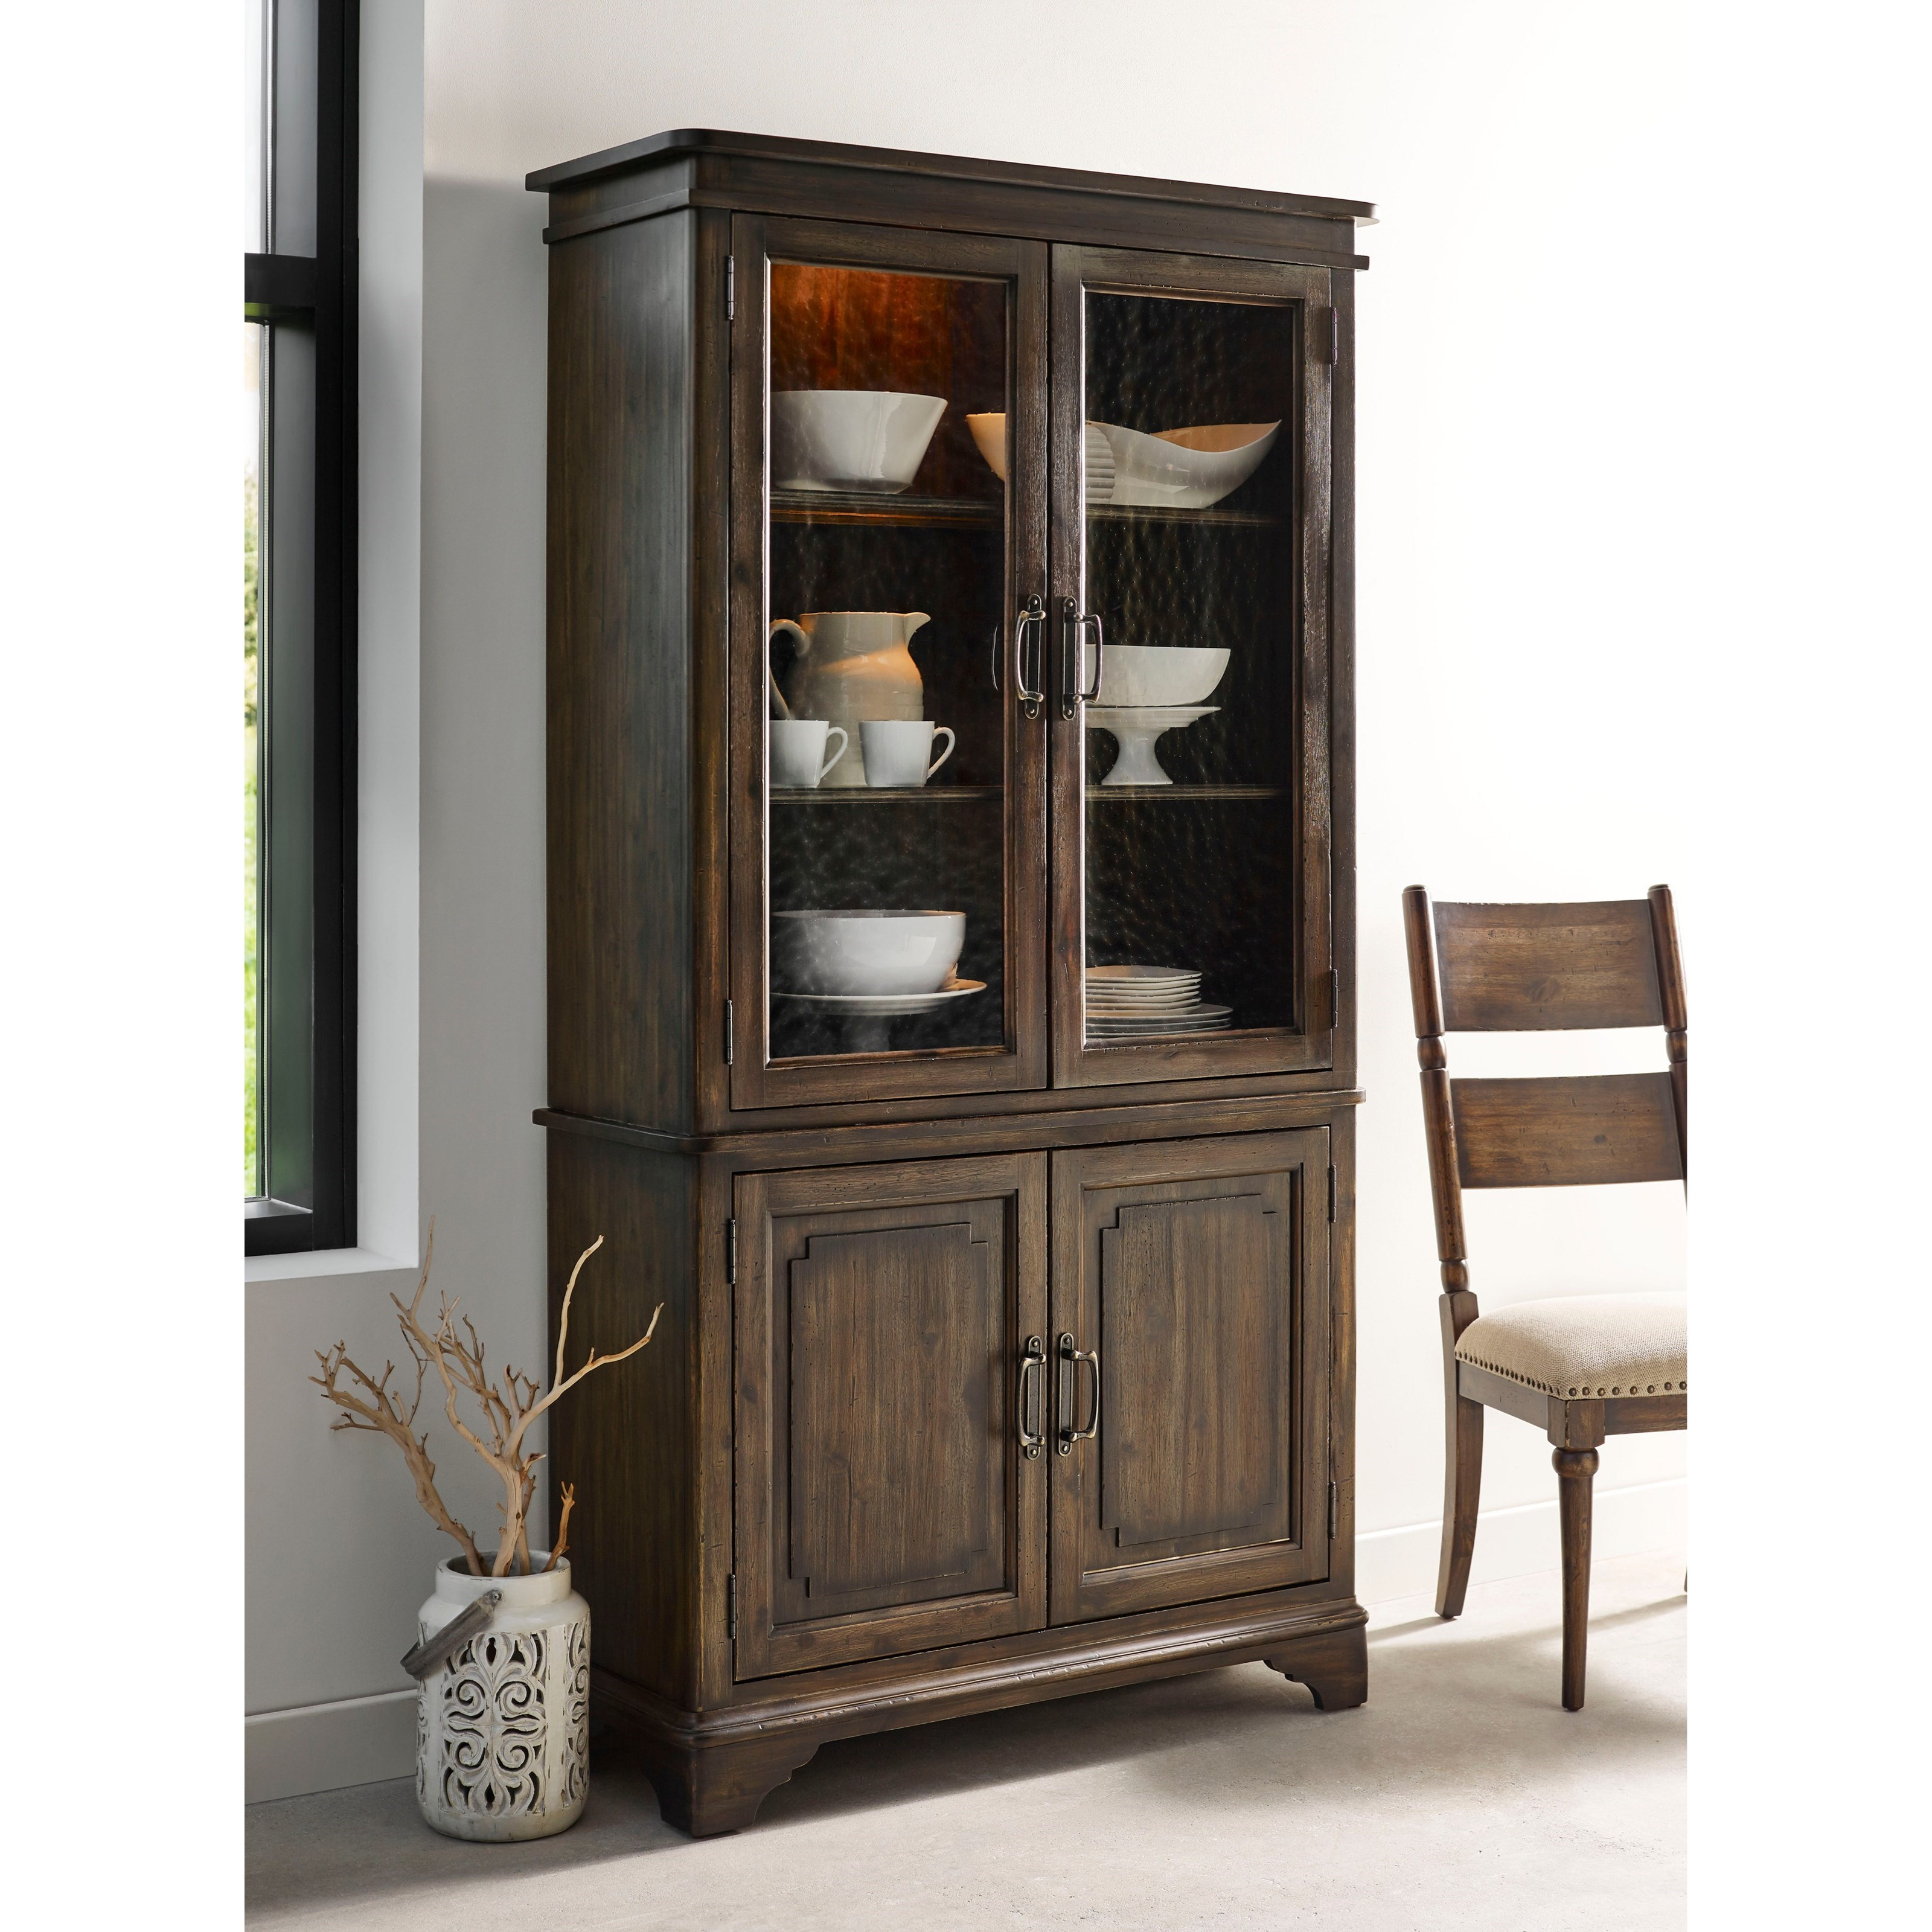 Glass door china cabinet gallery china cabinet glass doors image collections doors design - Trendy ikea kitchen design collection worth ...